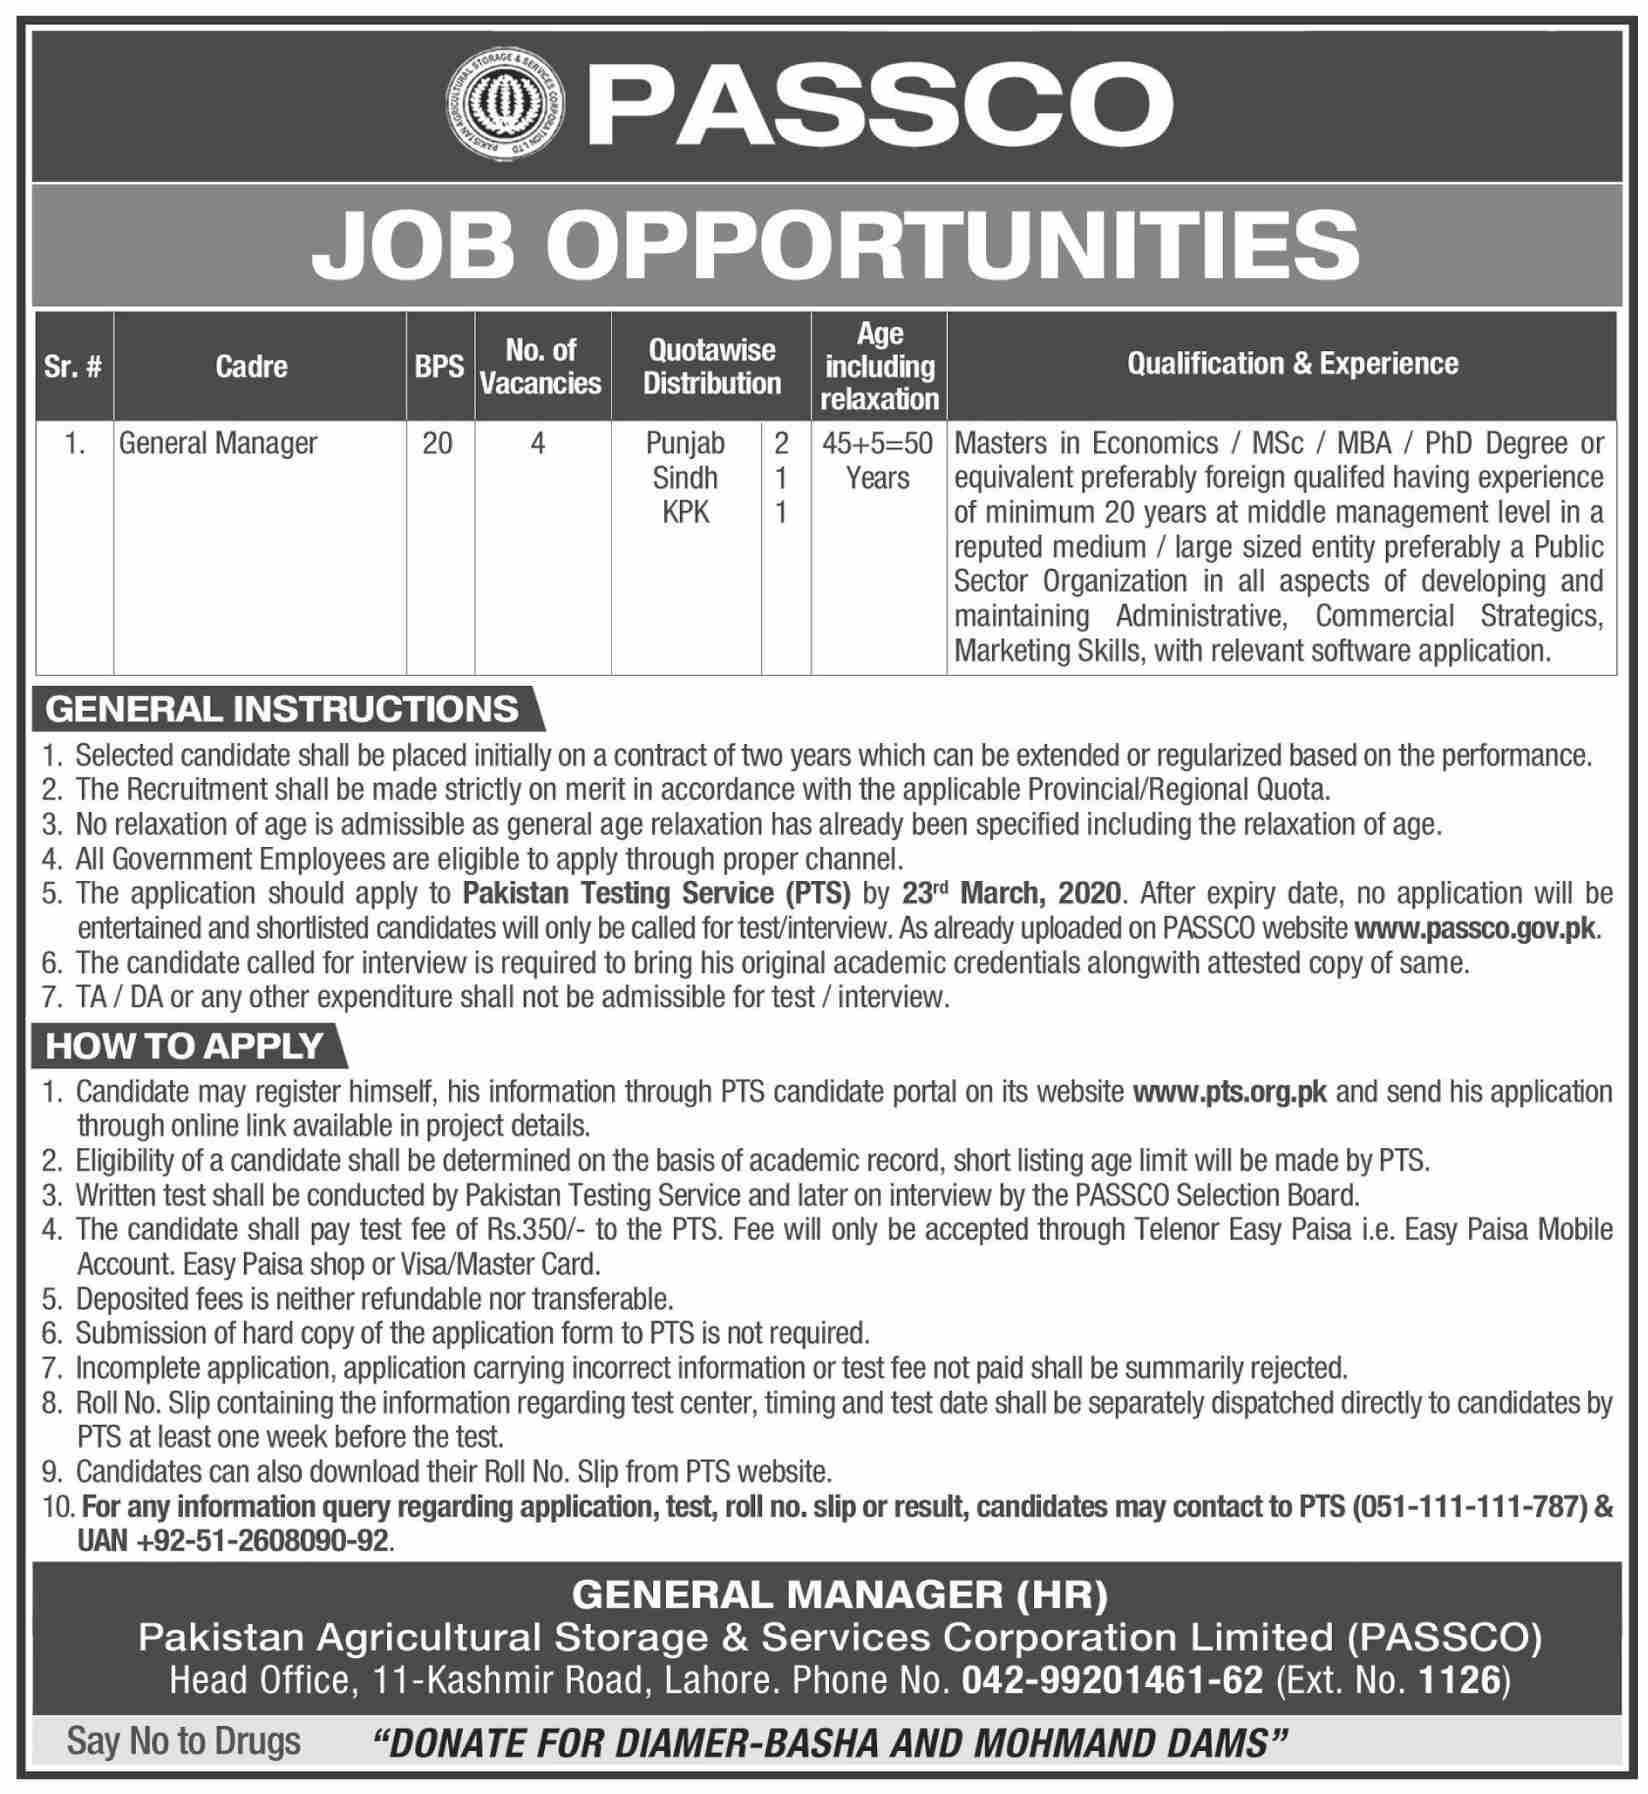 Pakistan Testing Service PTS Announced Jobs In PASSCO 11 March 2020